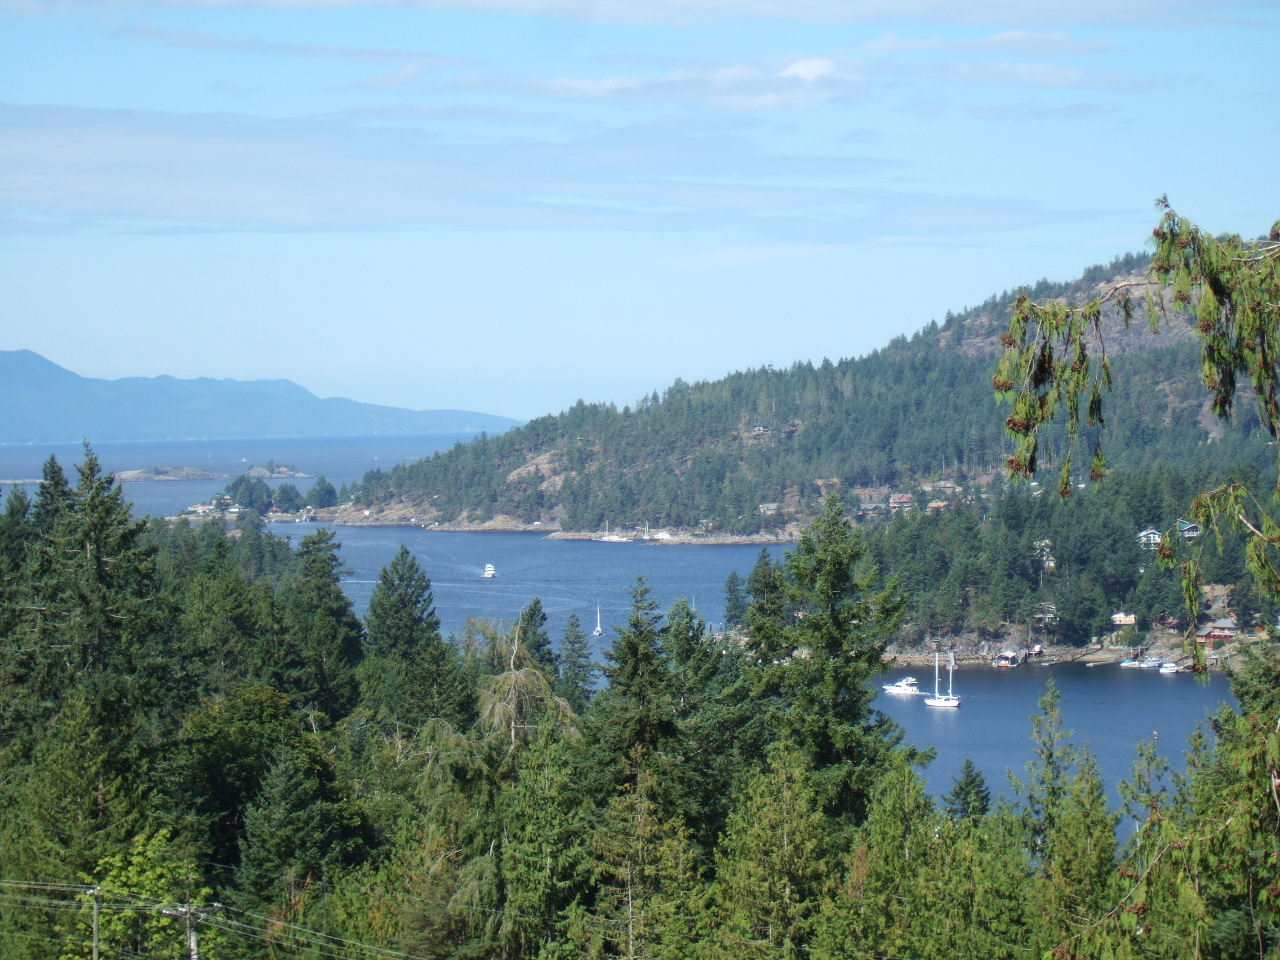 WESTERLY VIEWS of Pender Harbour and Straits - Residential BUILDING LOT (Lot 14 - 0.49 Acre). Freehold/fee simple Titles (no strata fees). Located in the heart of Madeira Park Village. Minutes to shopping & amenities including moorage & public boat ramp. Excellent hiking, fishing/boating, golfing in this area.